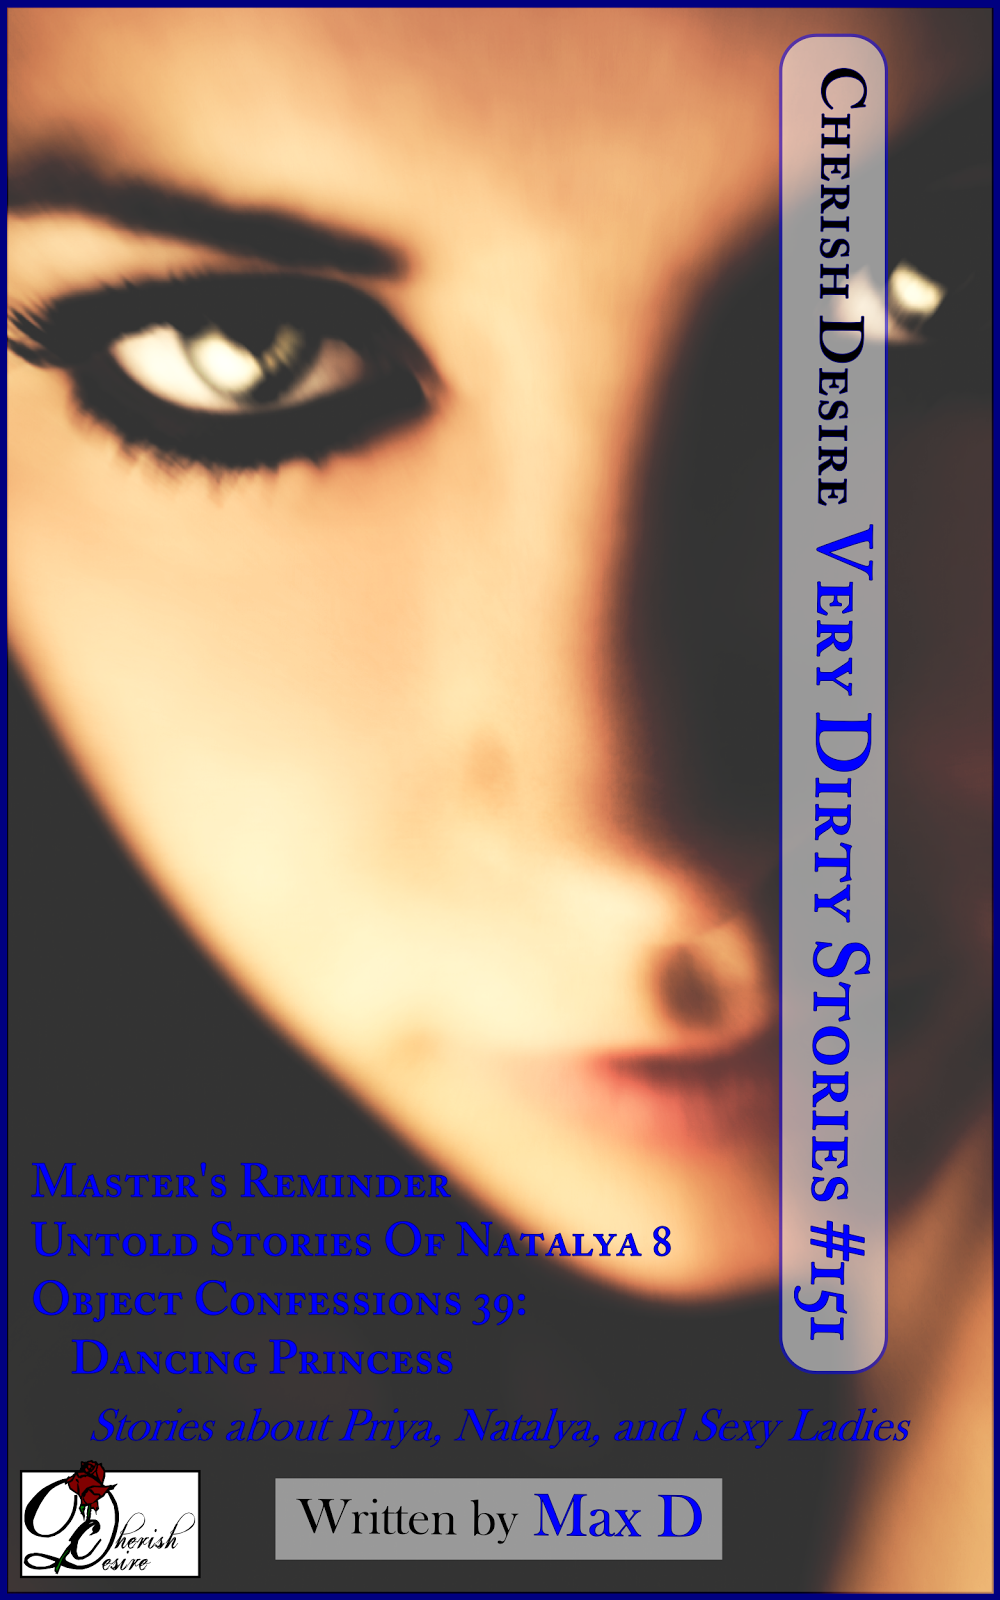 Cherish Desire: Very Dirty Stories #151, Max D, erotica